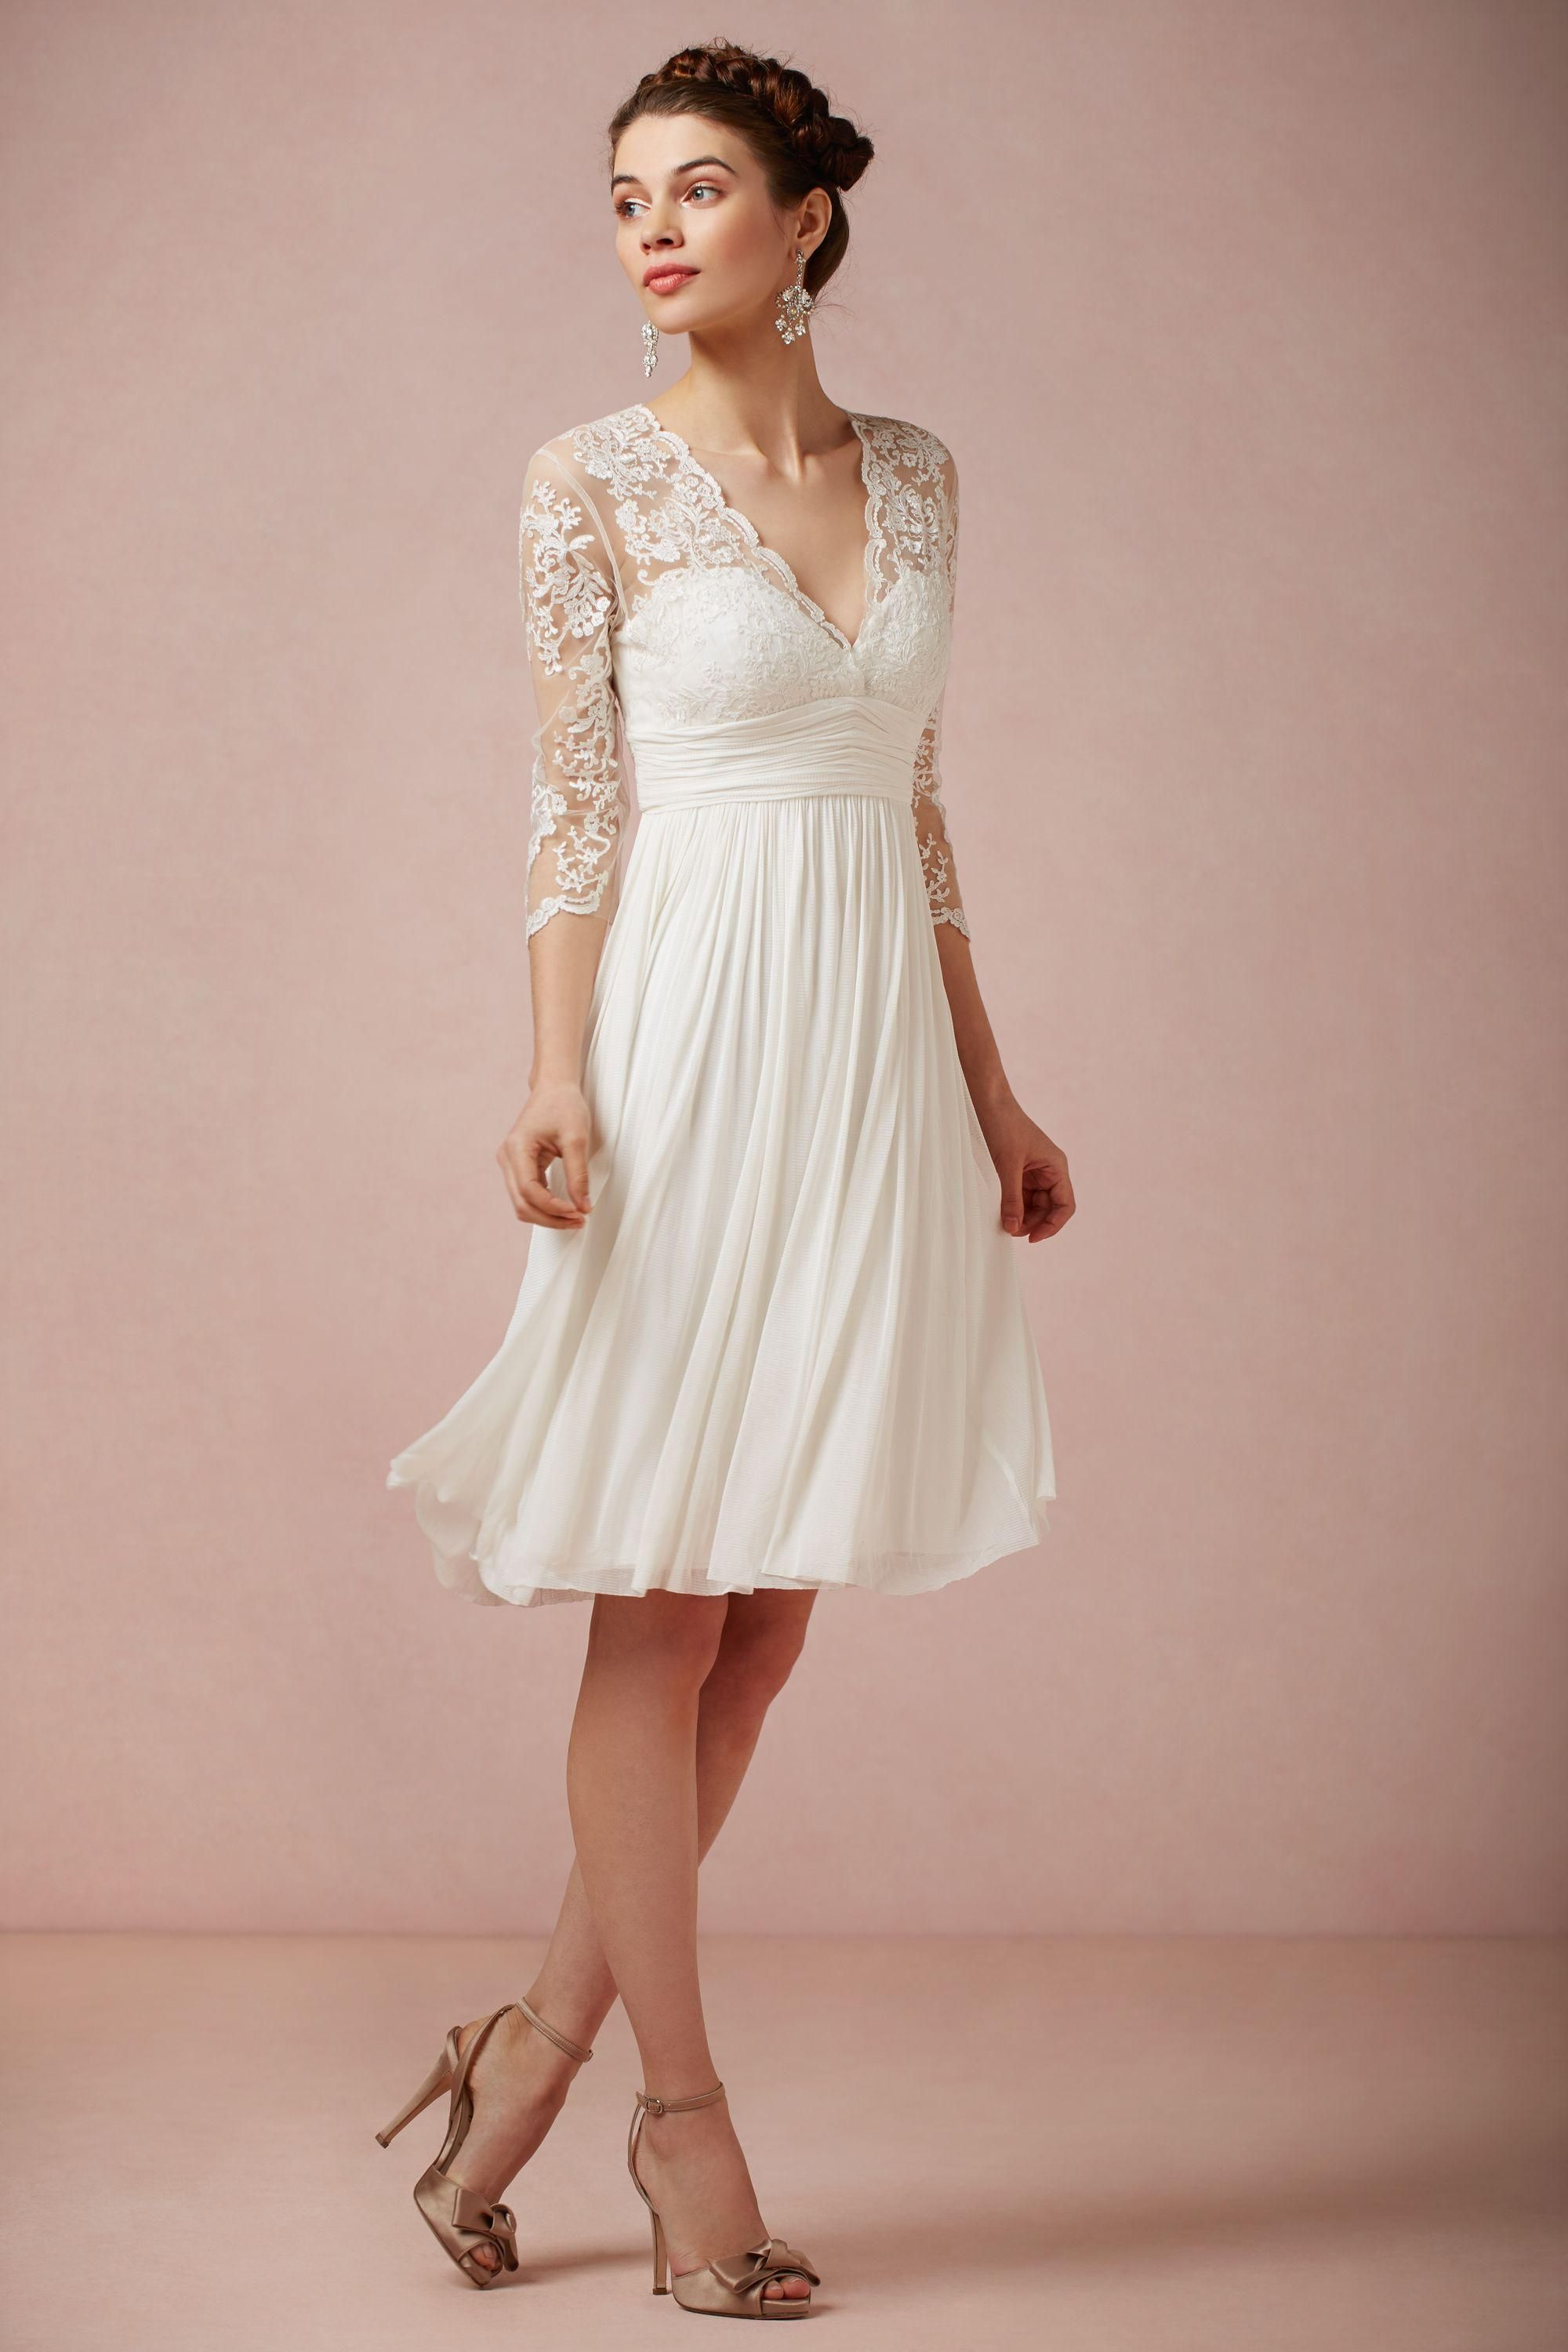 Little White Dresses You Can Buy Right Now | wedding stuff ...